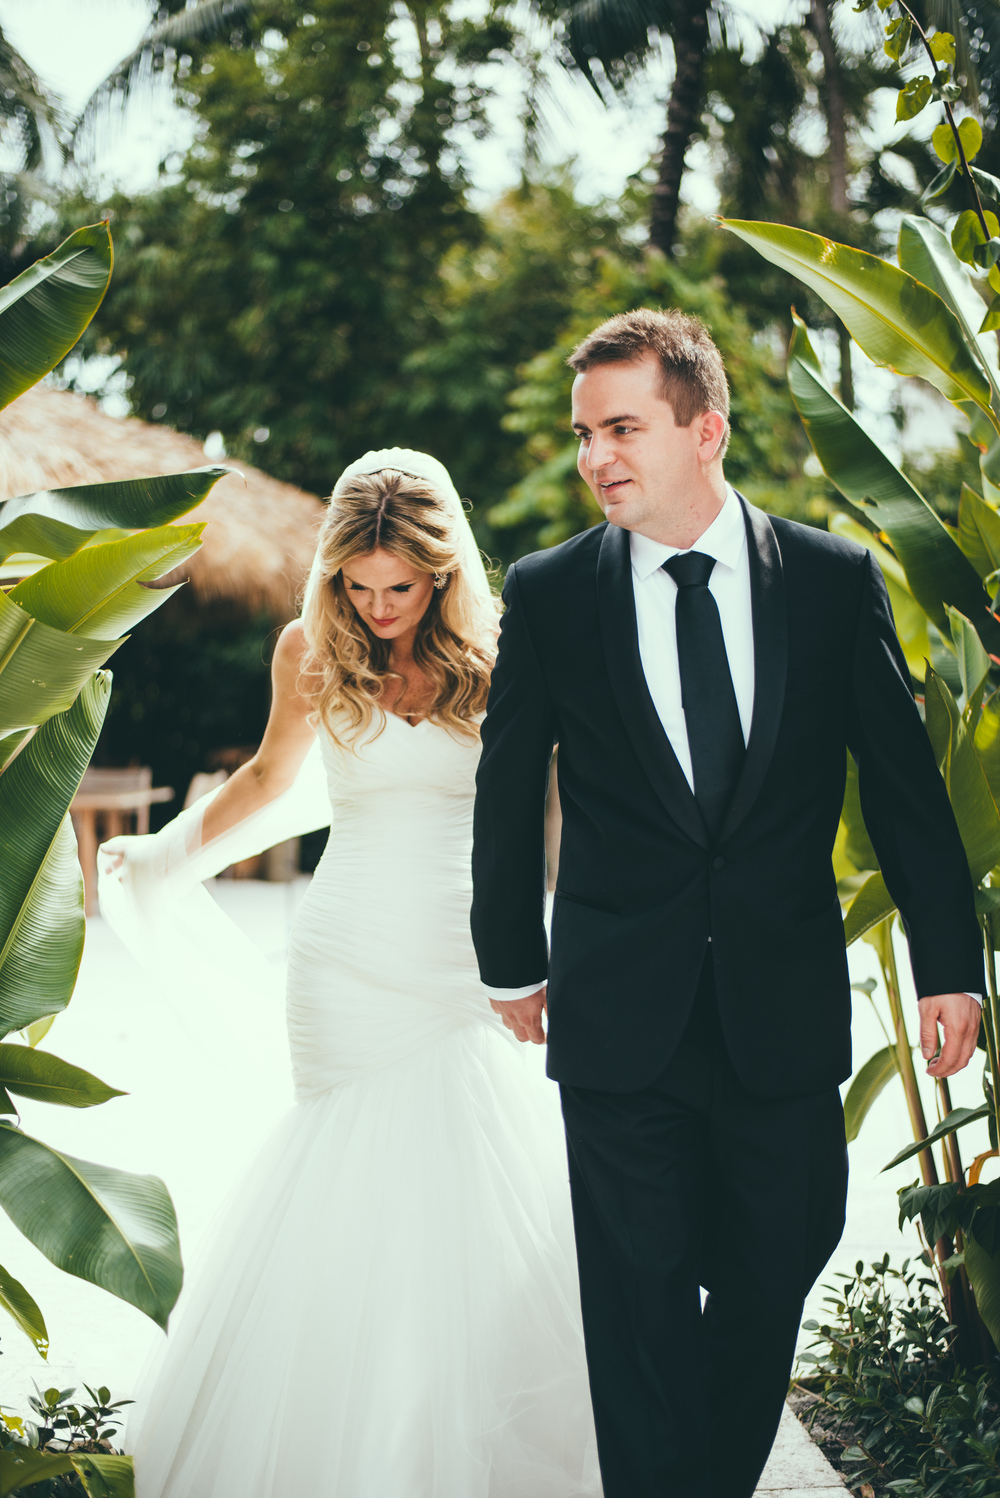 The Palms Hotel & Spa Wedding Miami Florida Photographer Bride Groom walking to ceremony